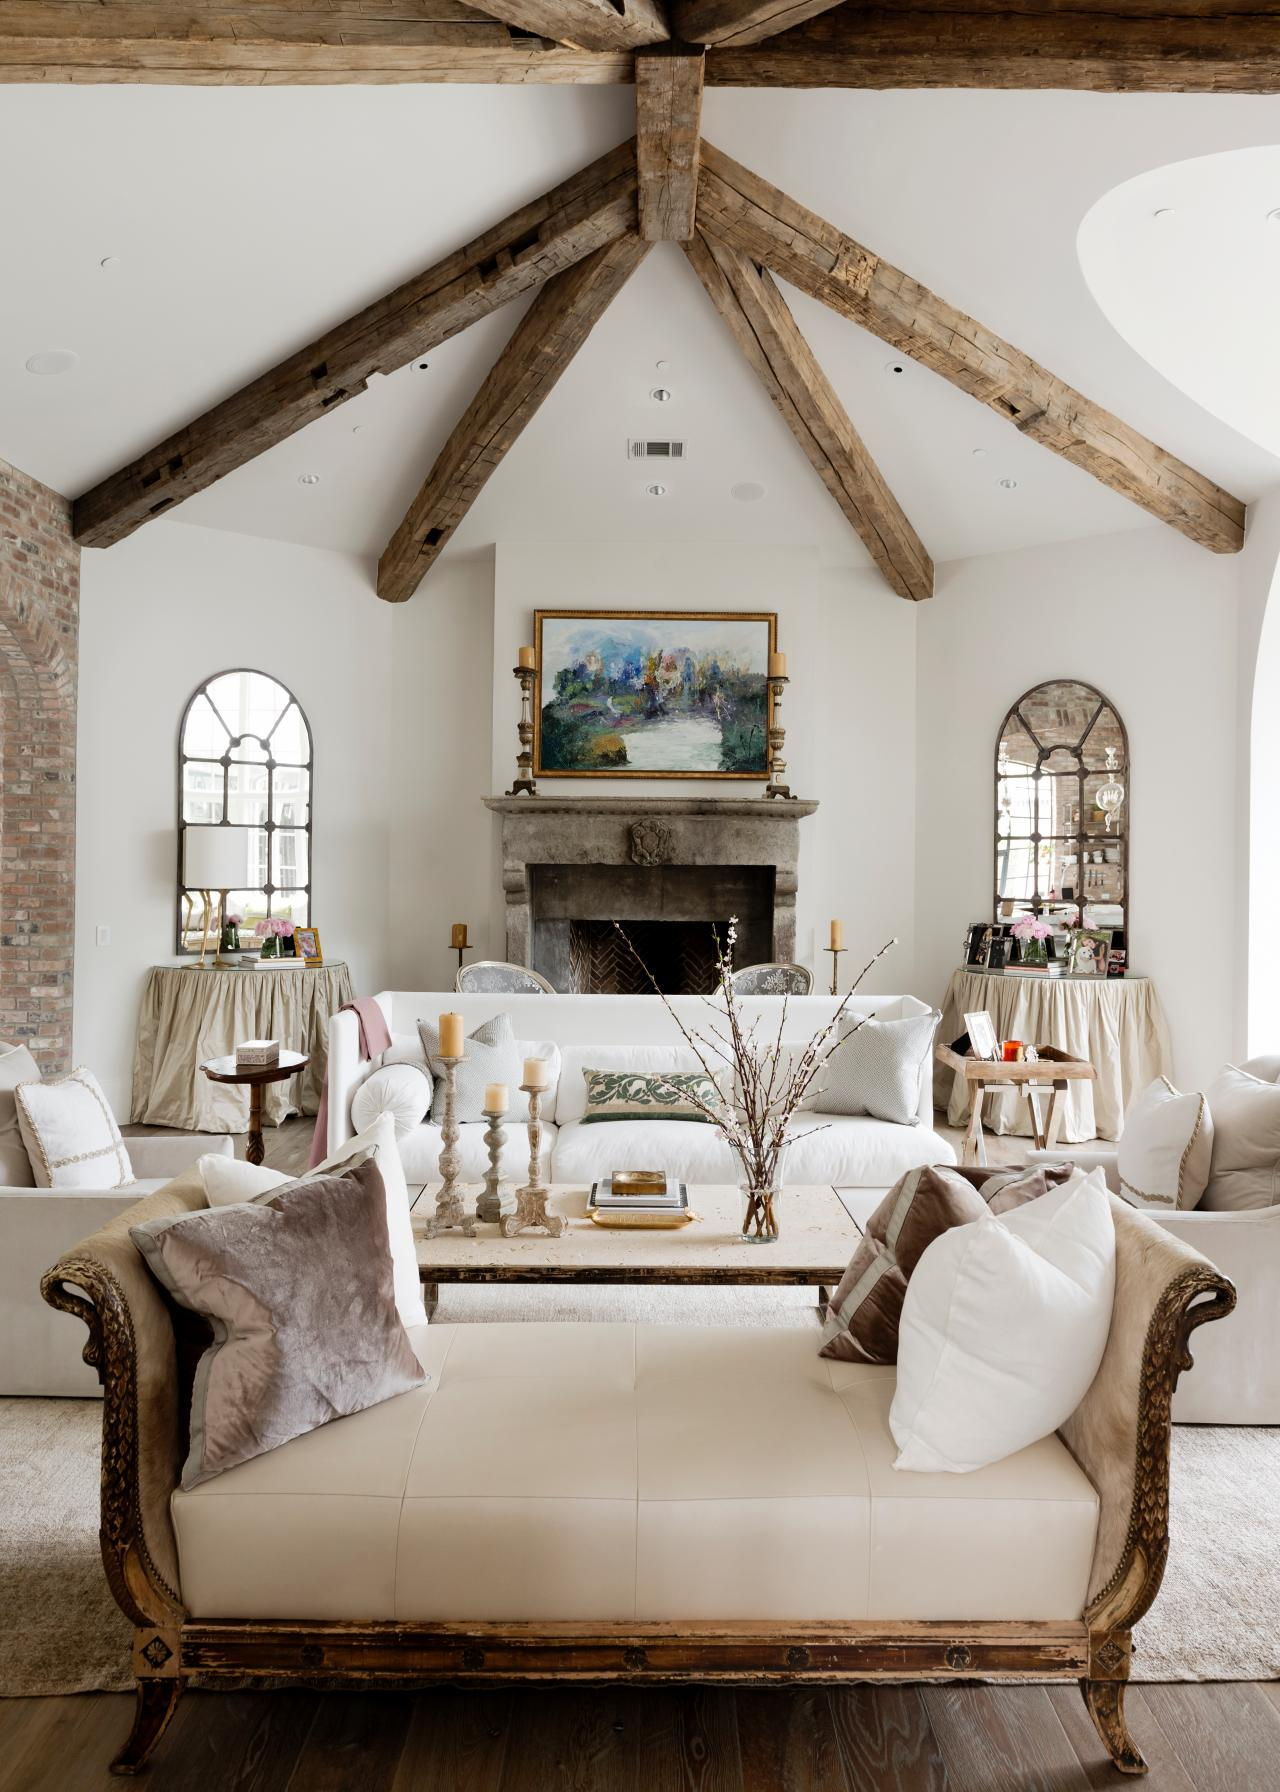 Charming rustic home